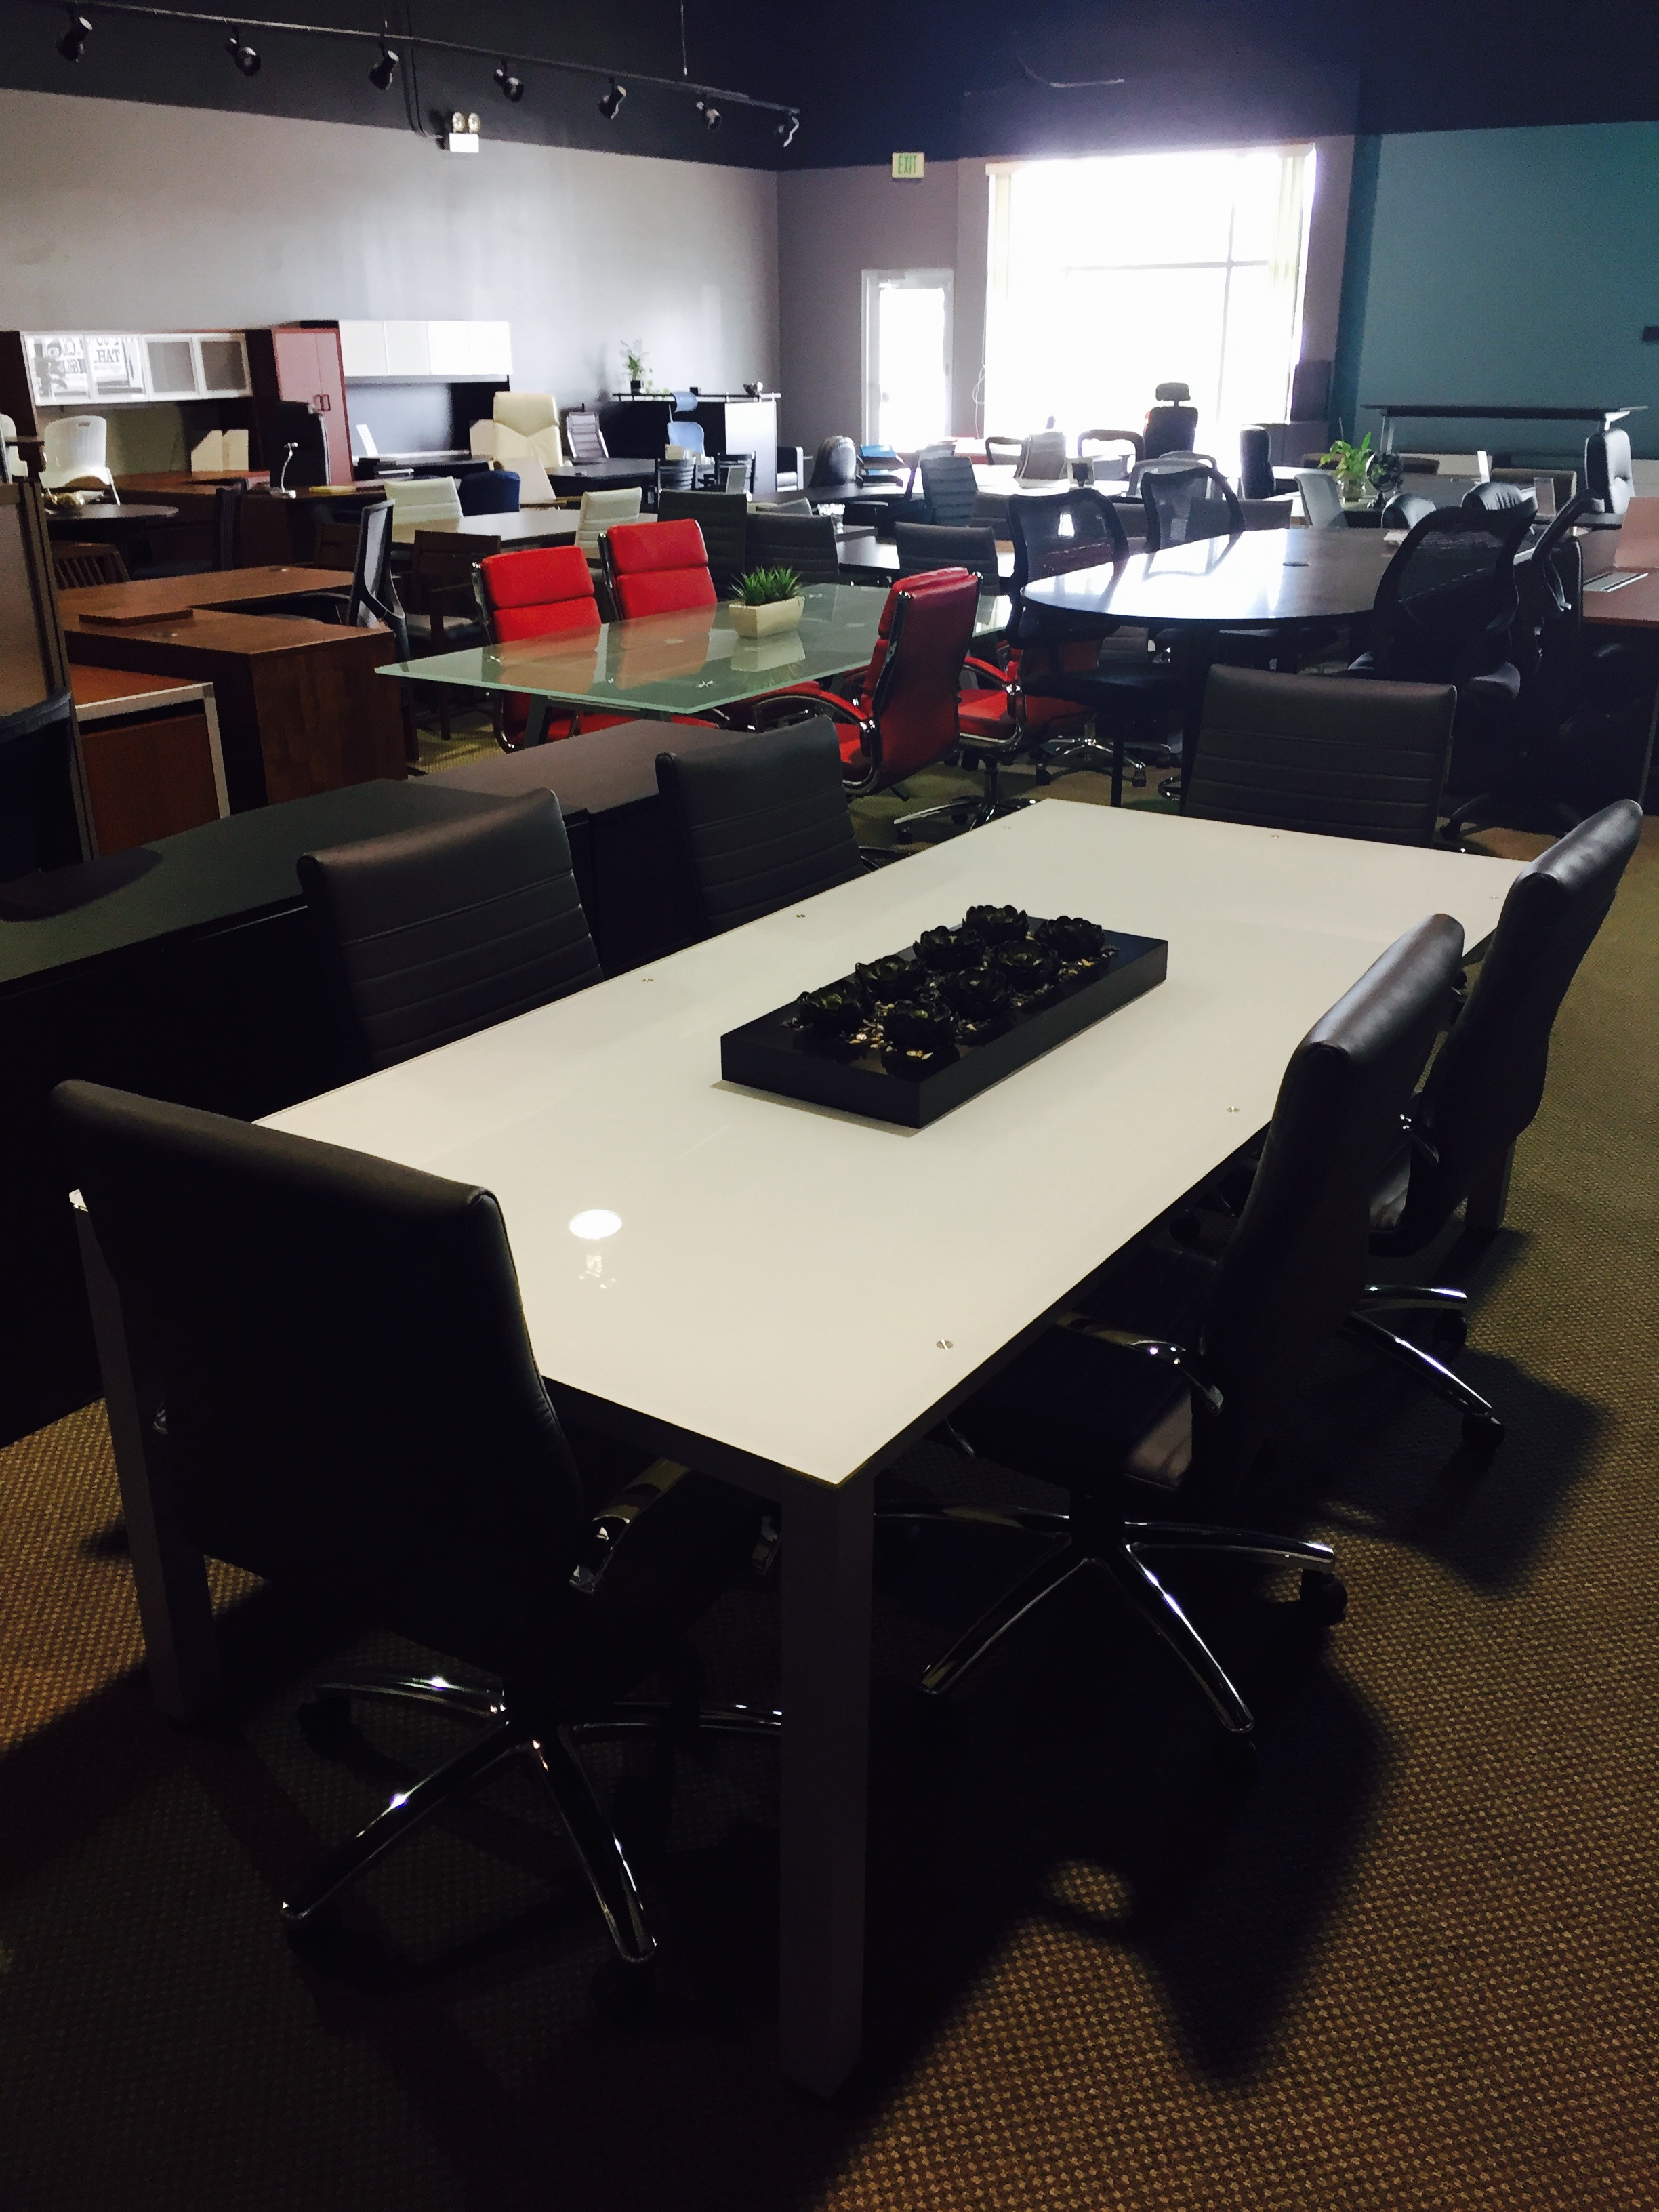 Browse Our Quality Selection Of Used And Pre Owned Office Furniture. With  Our Great Selection Of Used Furniture We Can Help You Find All Of The  Office ...